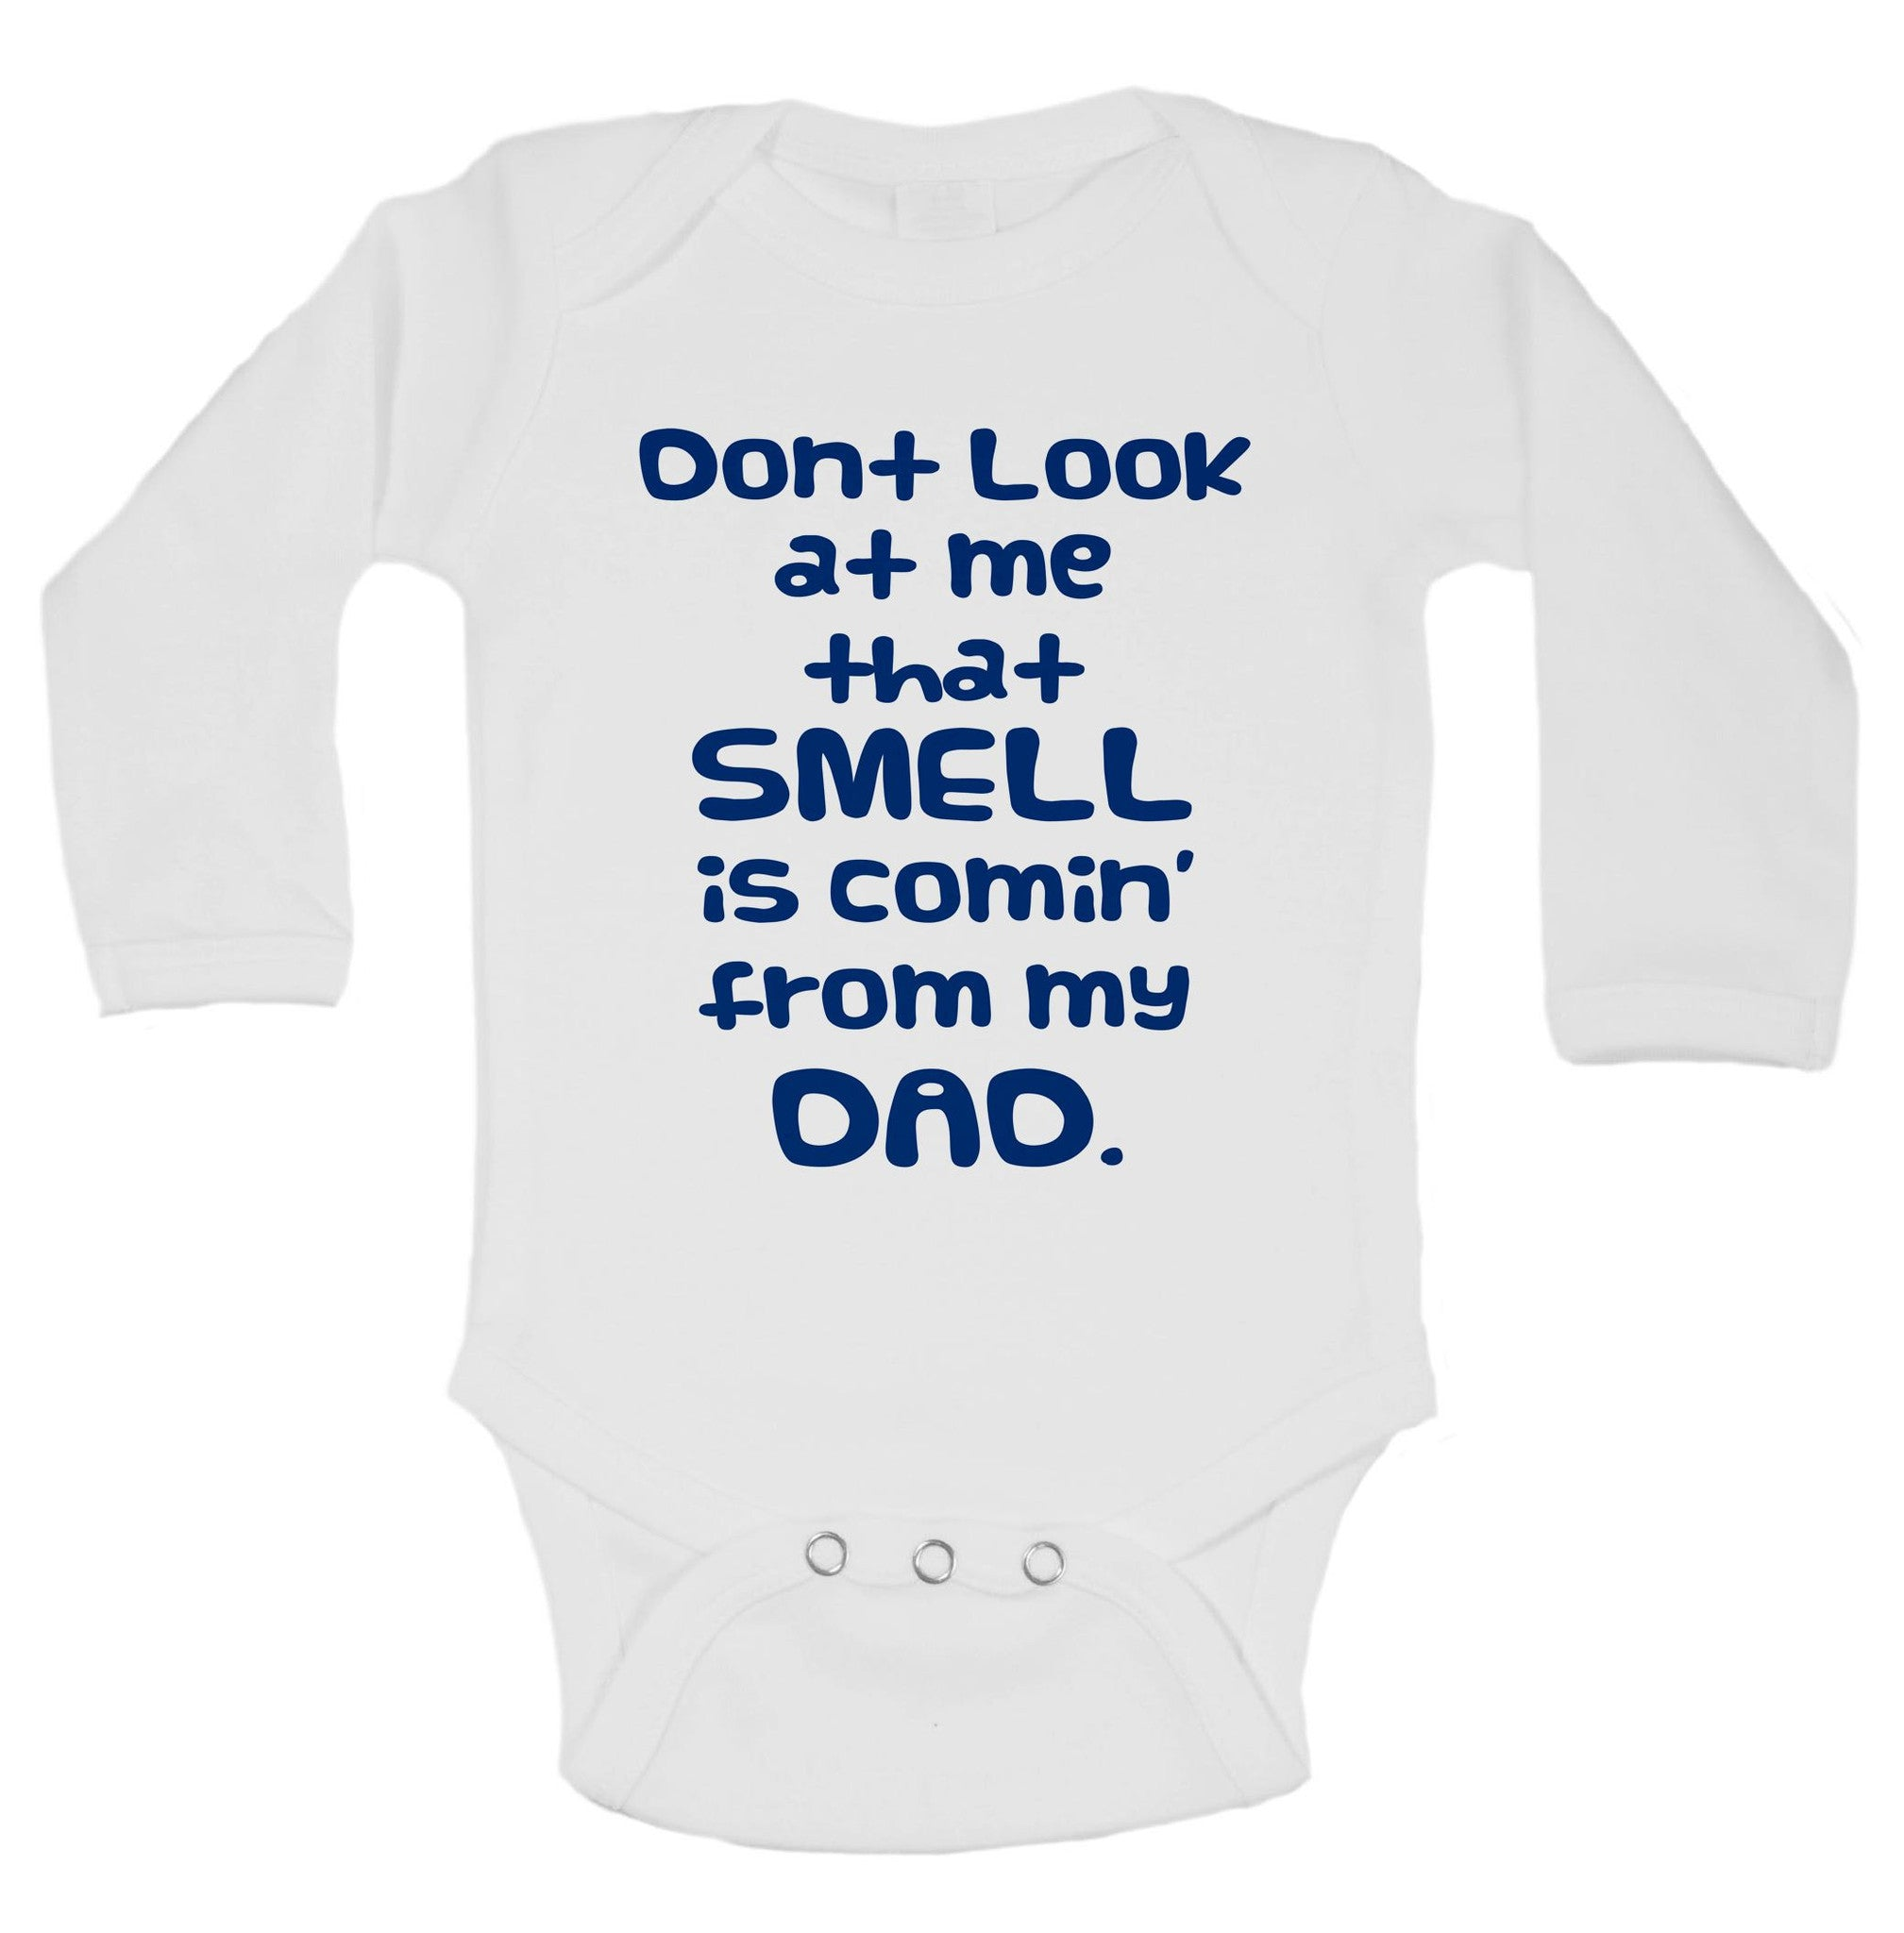 Dont Look At Me That Smell Is Comin' From My Dad Funny Kids Onesie - B23 - Funny Shirts Tank Tops Burnouts and Triblends  - 2